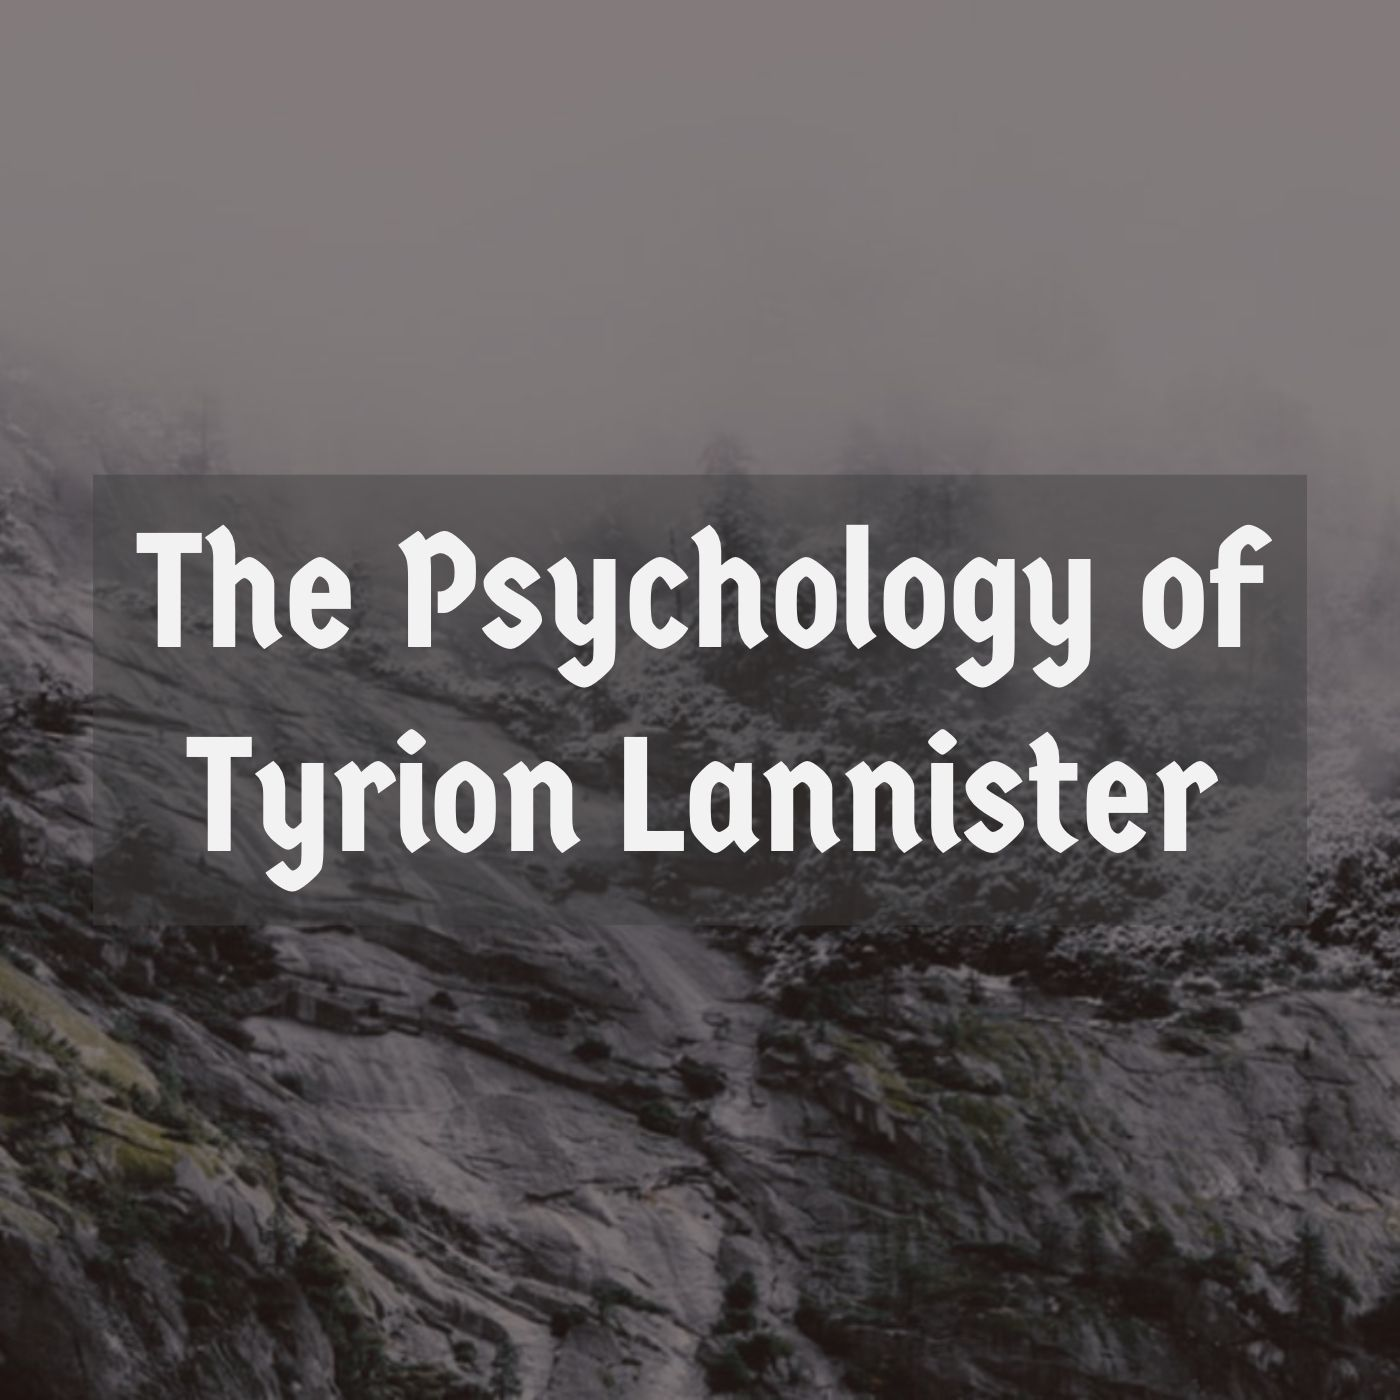 The Psychology of Tyrion Lannister (2017 Rerun)